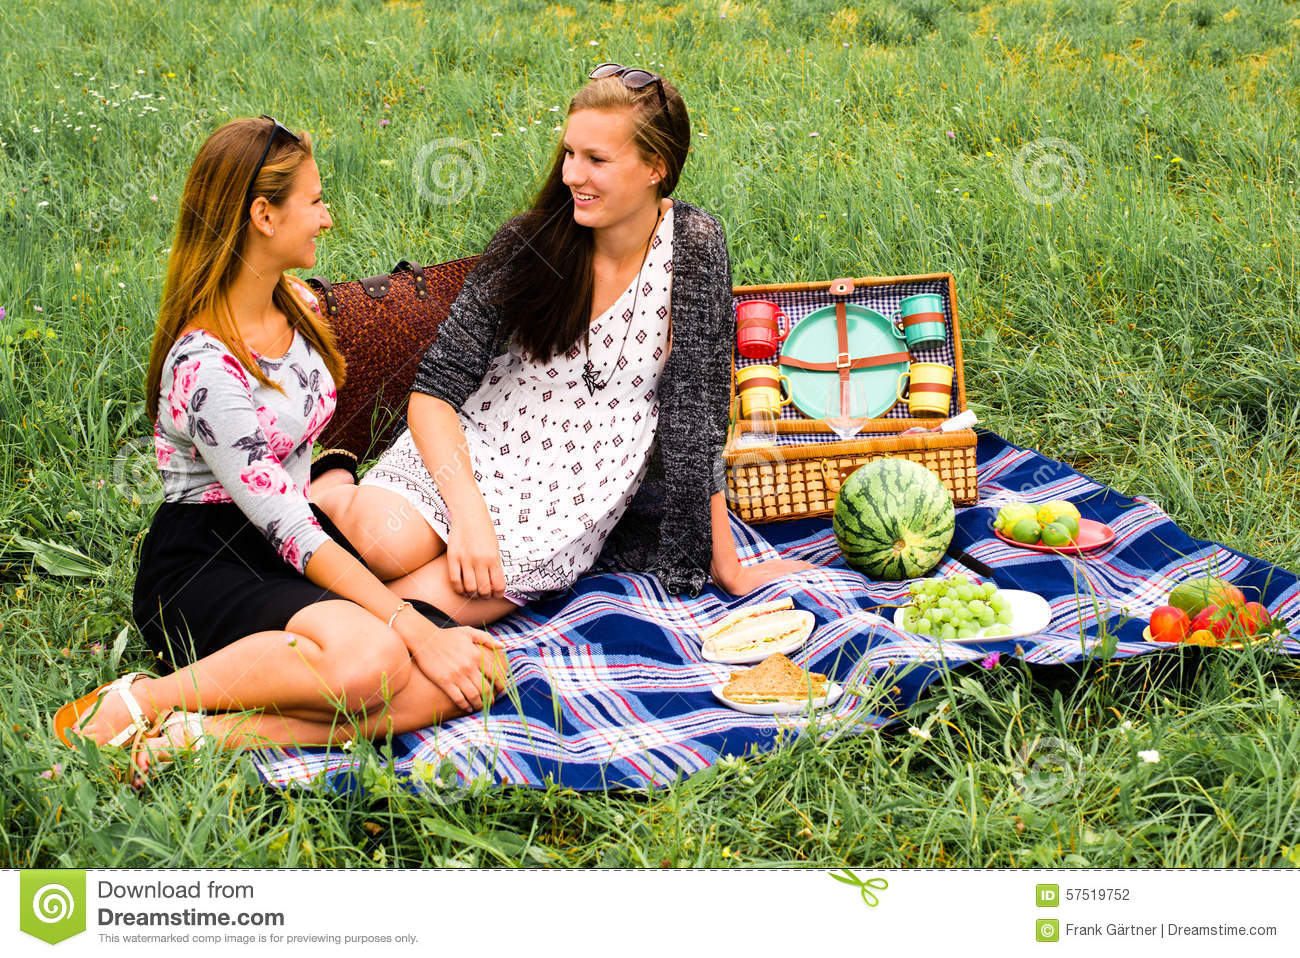 Girls Having Tea Party Picnic In Rural Field Stock Photo | Getty ...